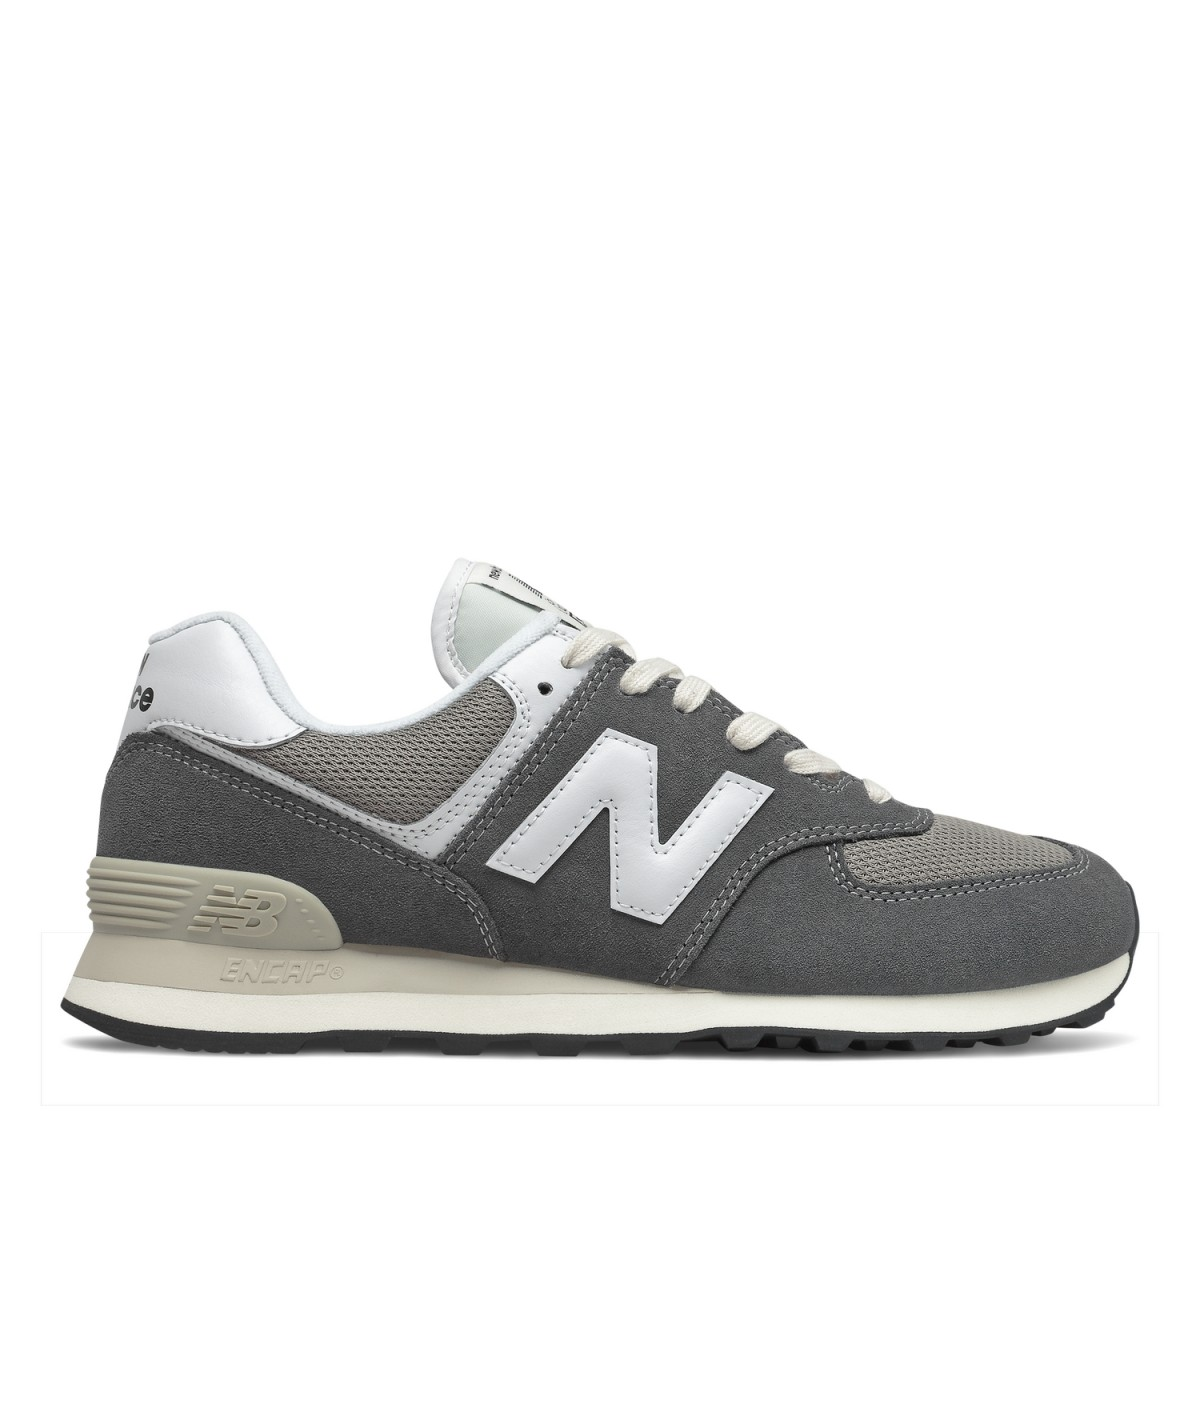 New Balance 574 HD2 grey men's sneakers